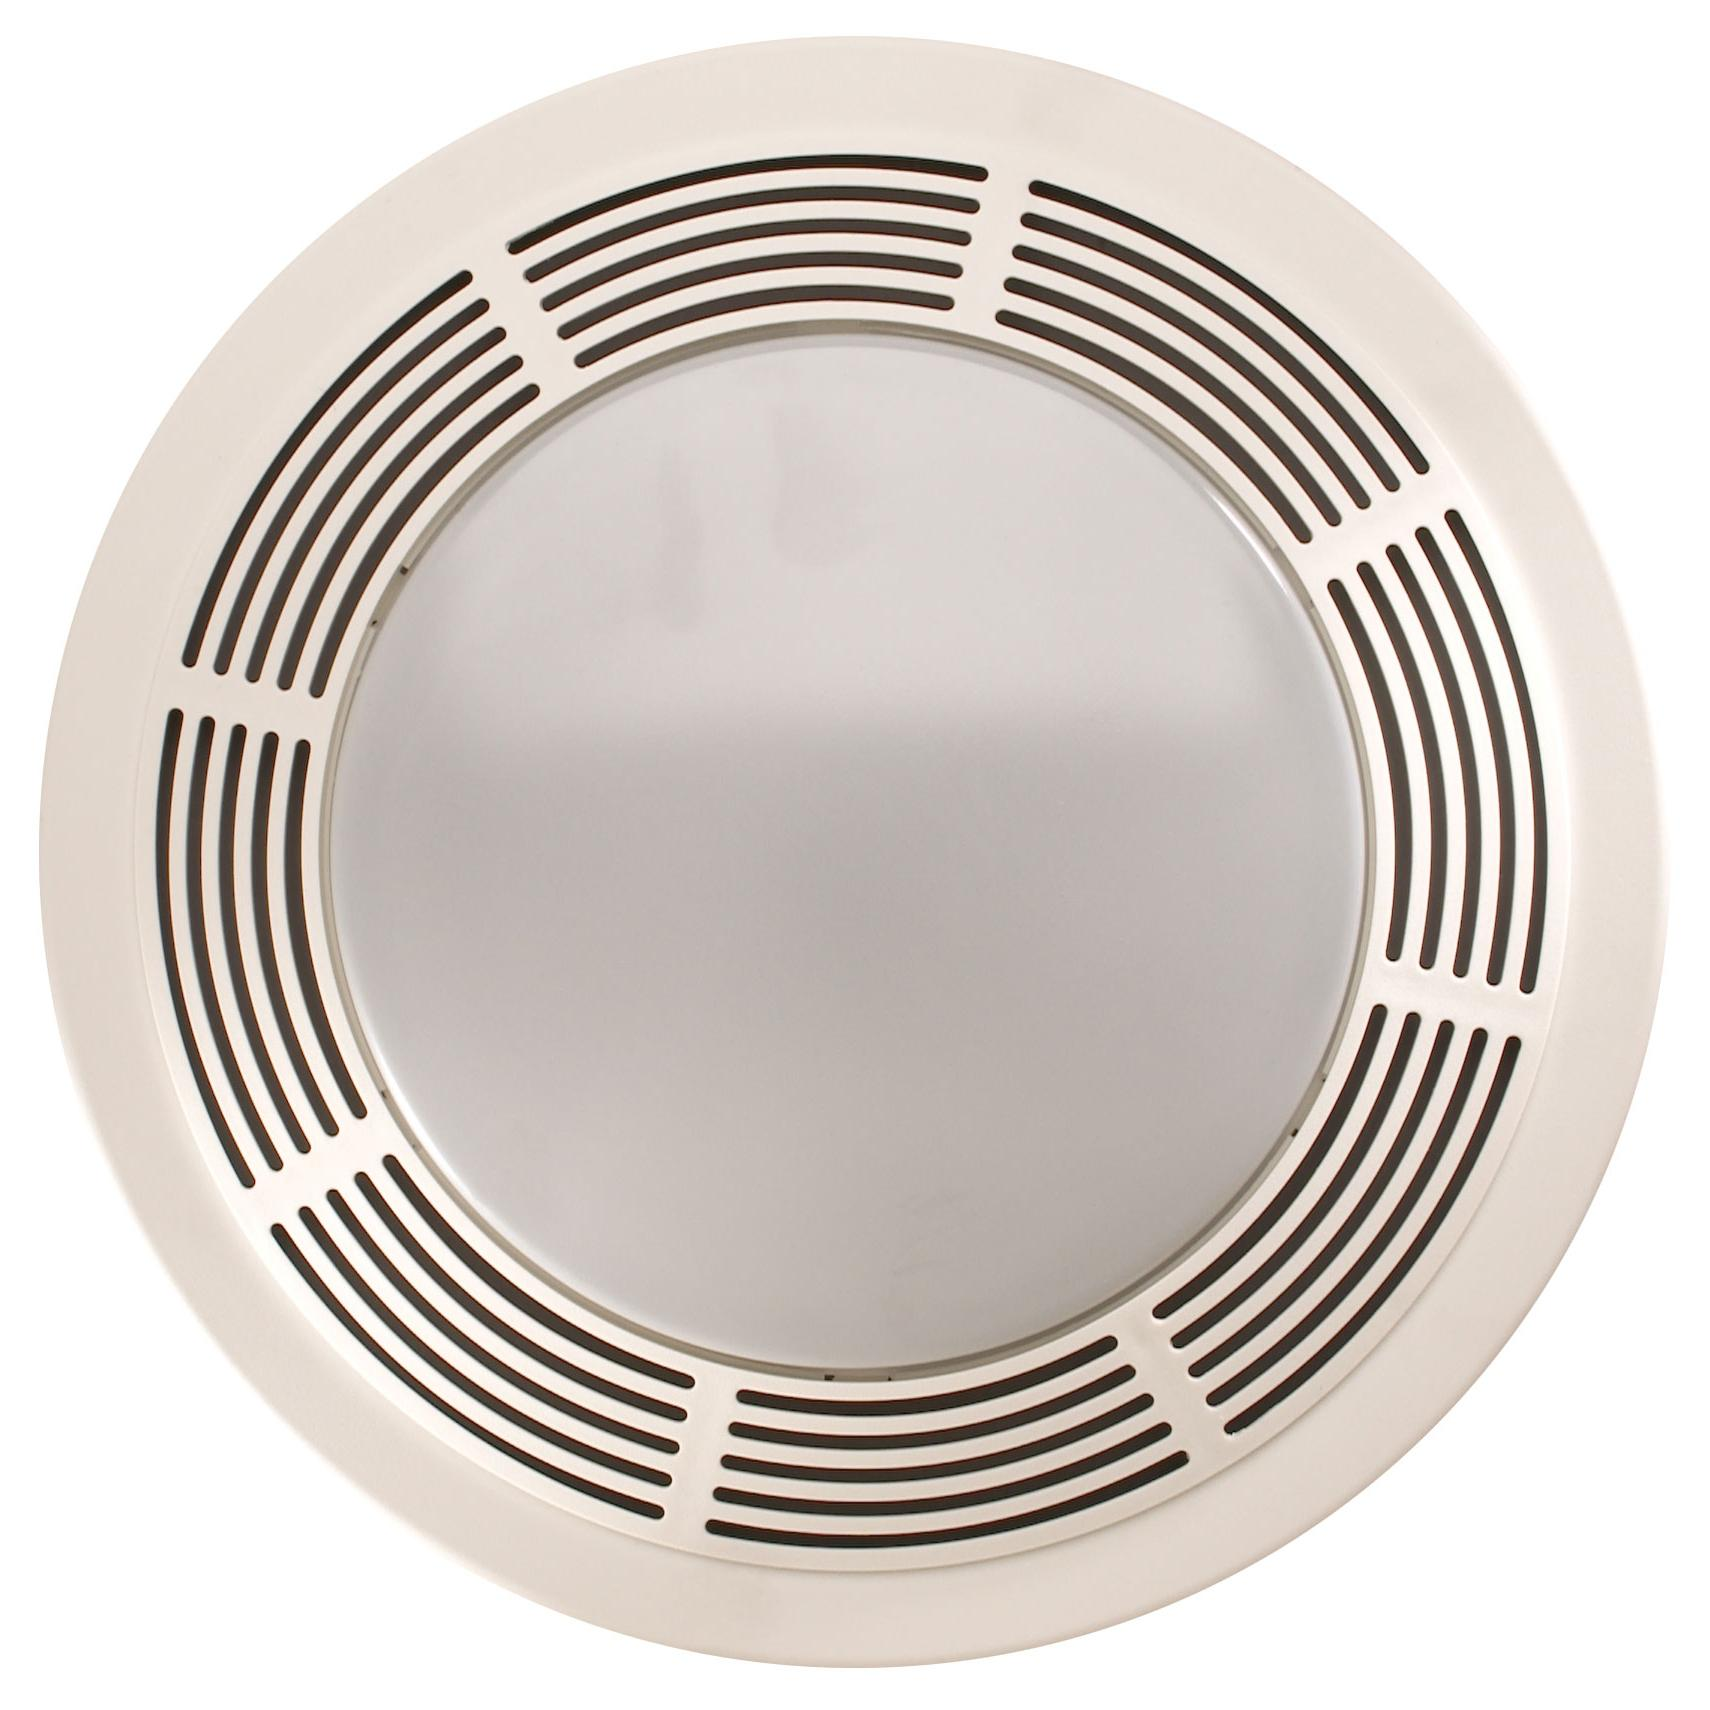 Broan 751 fan and light with round white grille and glass lens 100 broan 750 fanlightnight light round white plastic grille with glass mozeypictures